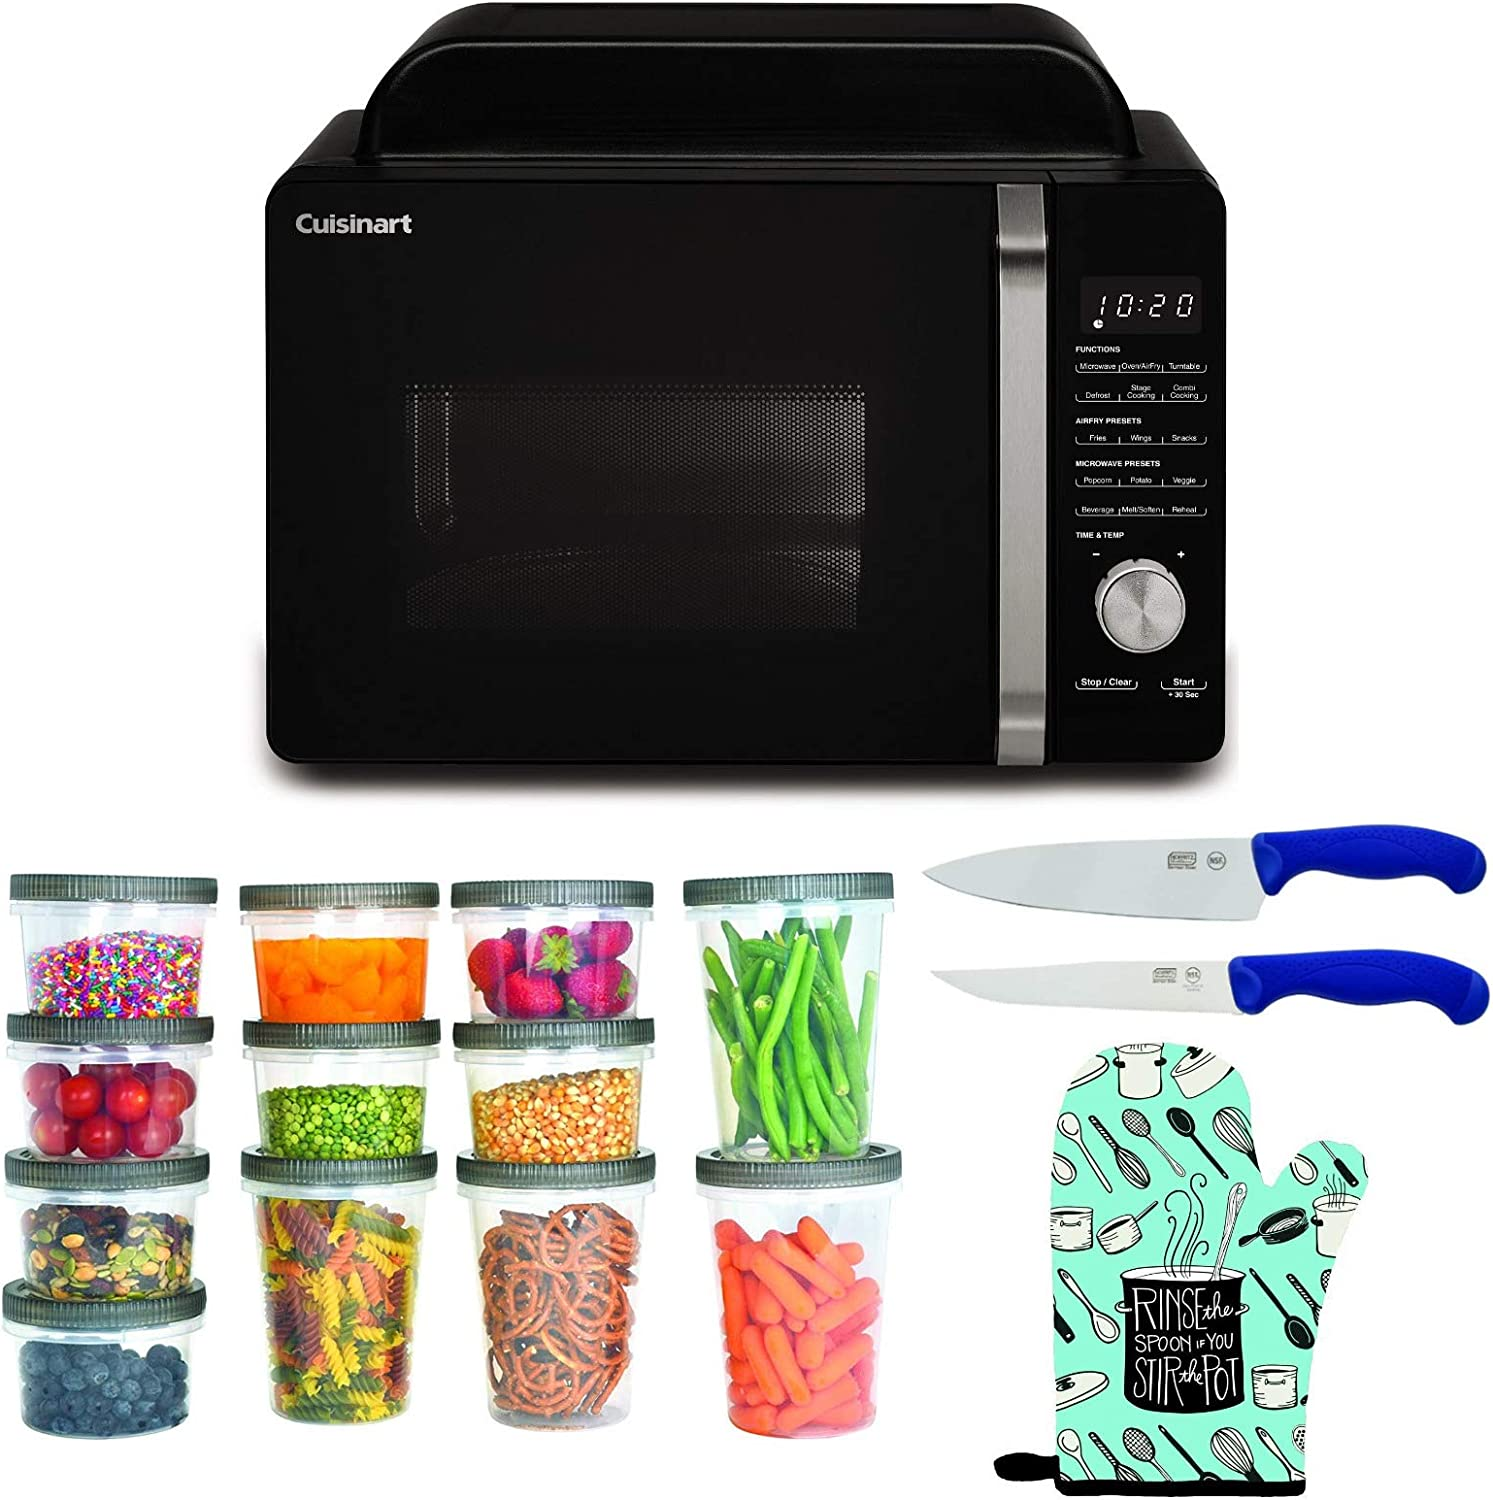 Cuisinart AMW-60 3-in-1 Microwave AirFryer Colorado Springs Mall Oven Convection Clearance SALE Limited time Bundl